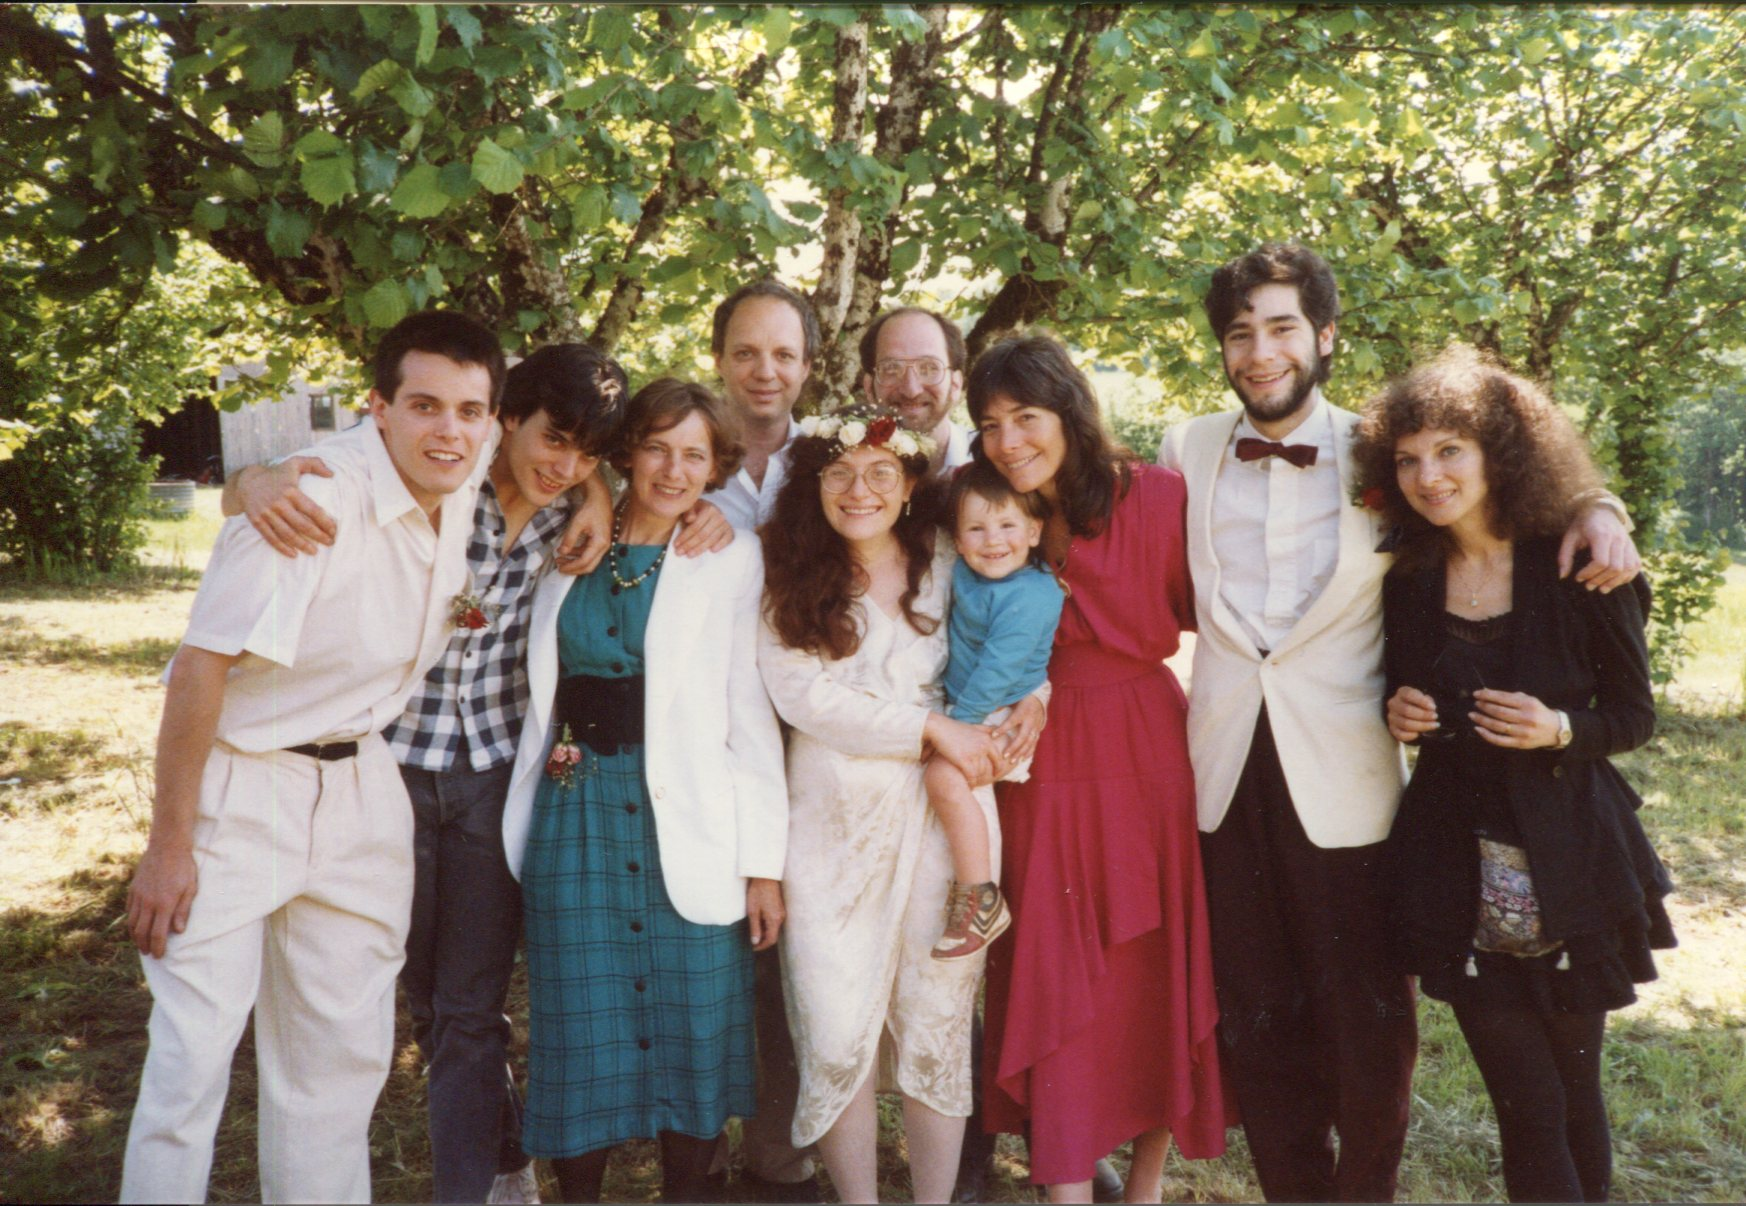 May 14, 1986 Family Wedding